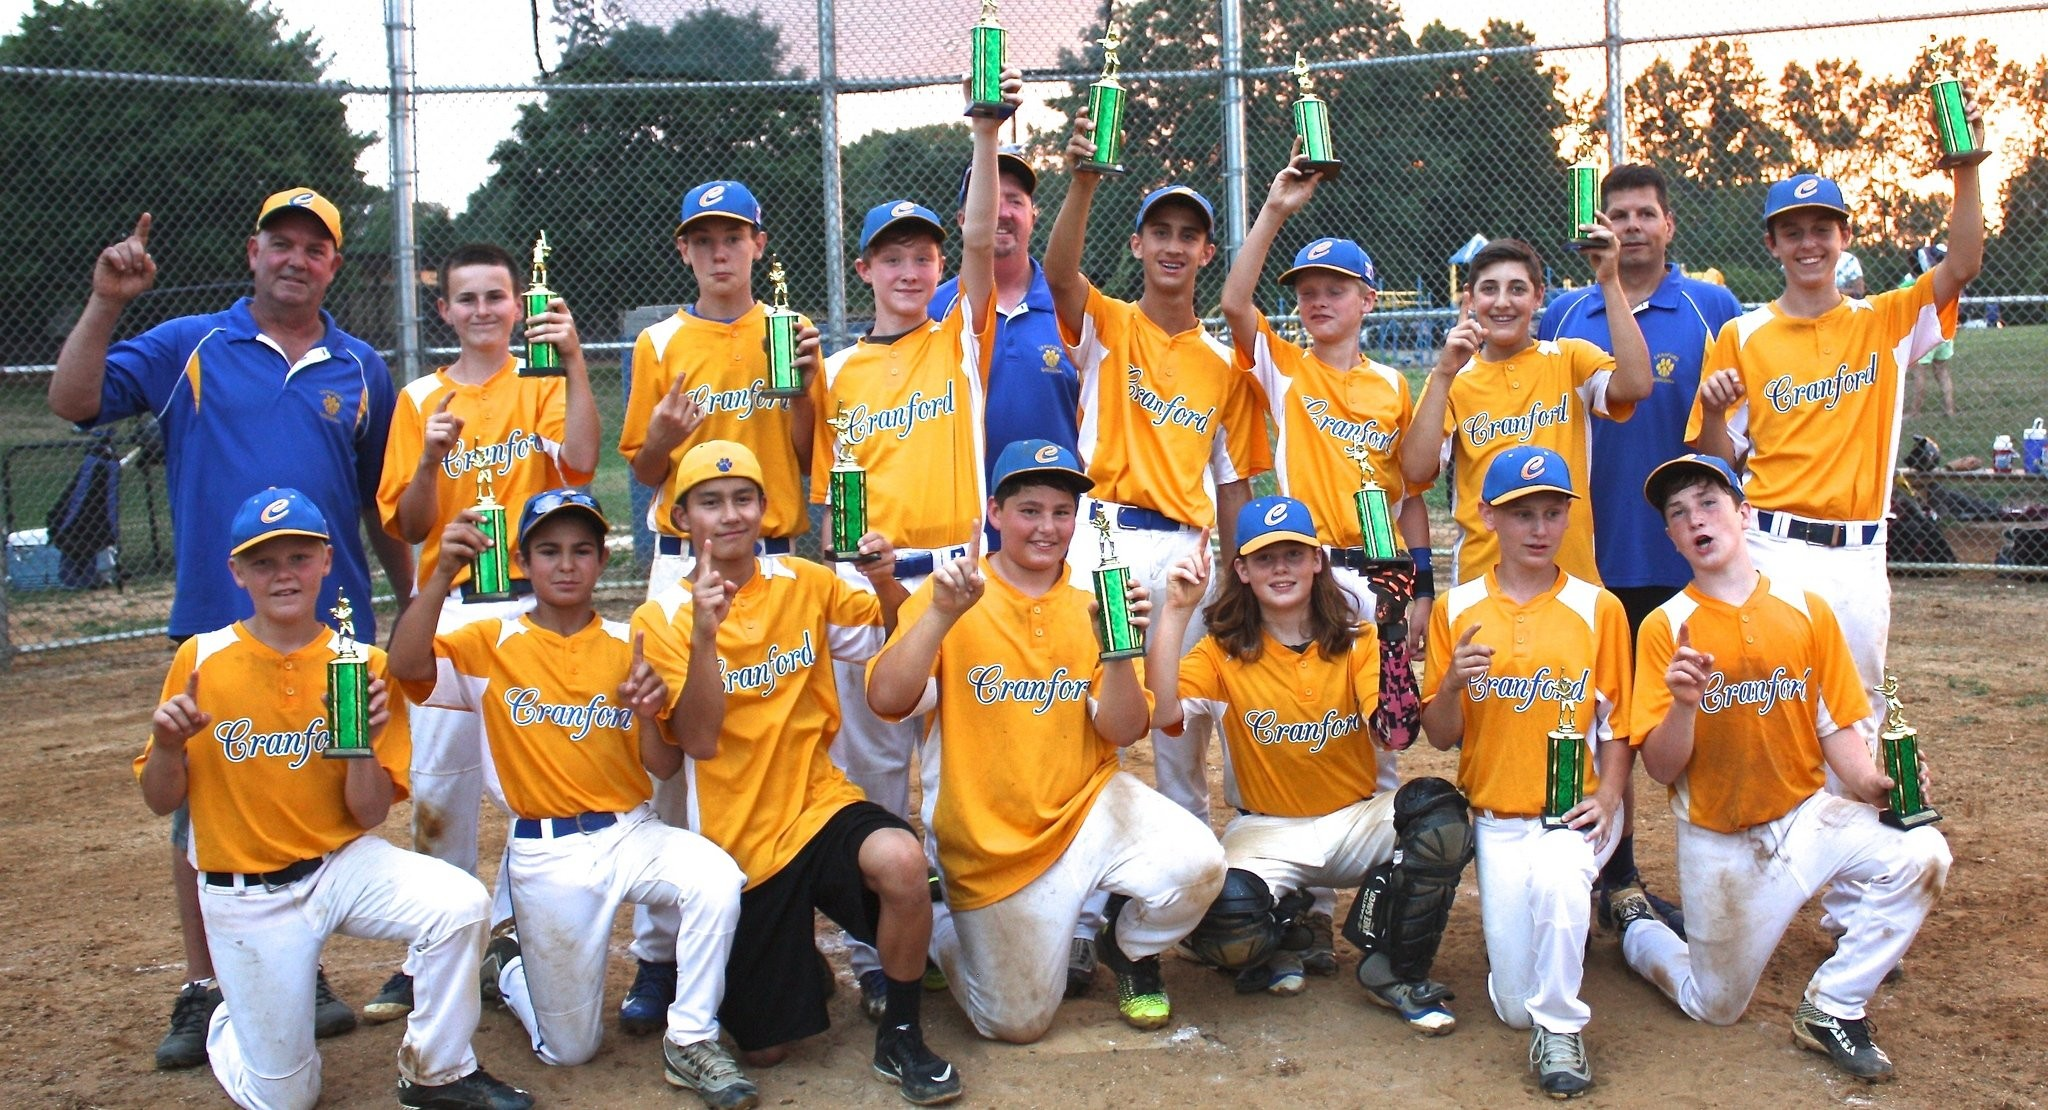 Cranford 13u Baseball Team Wins New Providence Green League Championship Nj Com